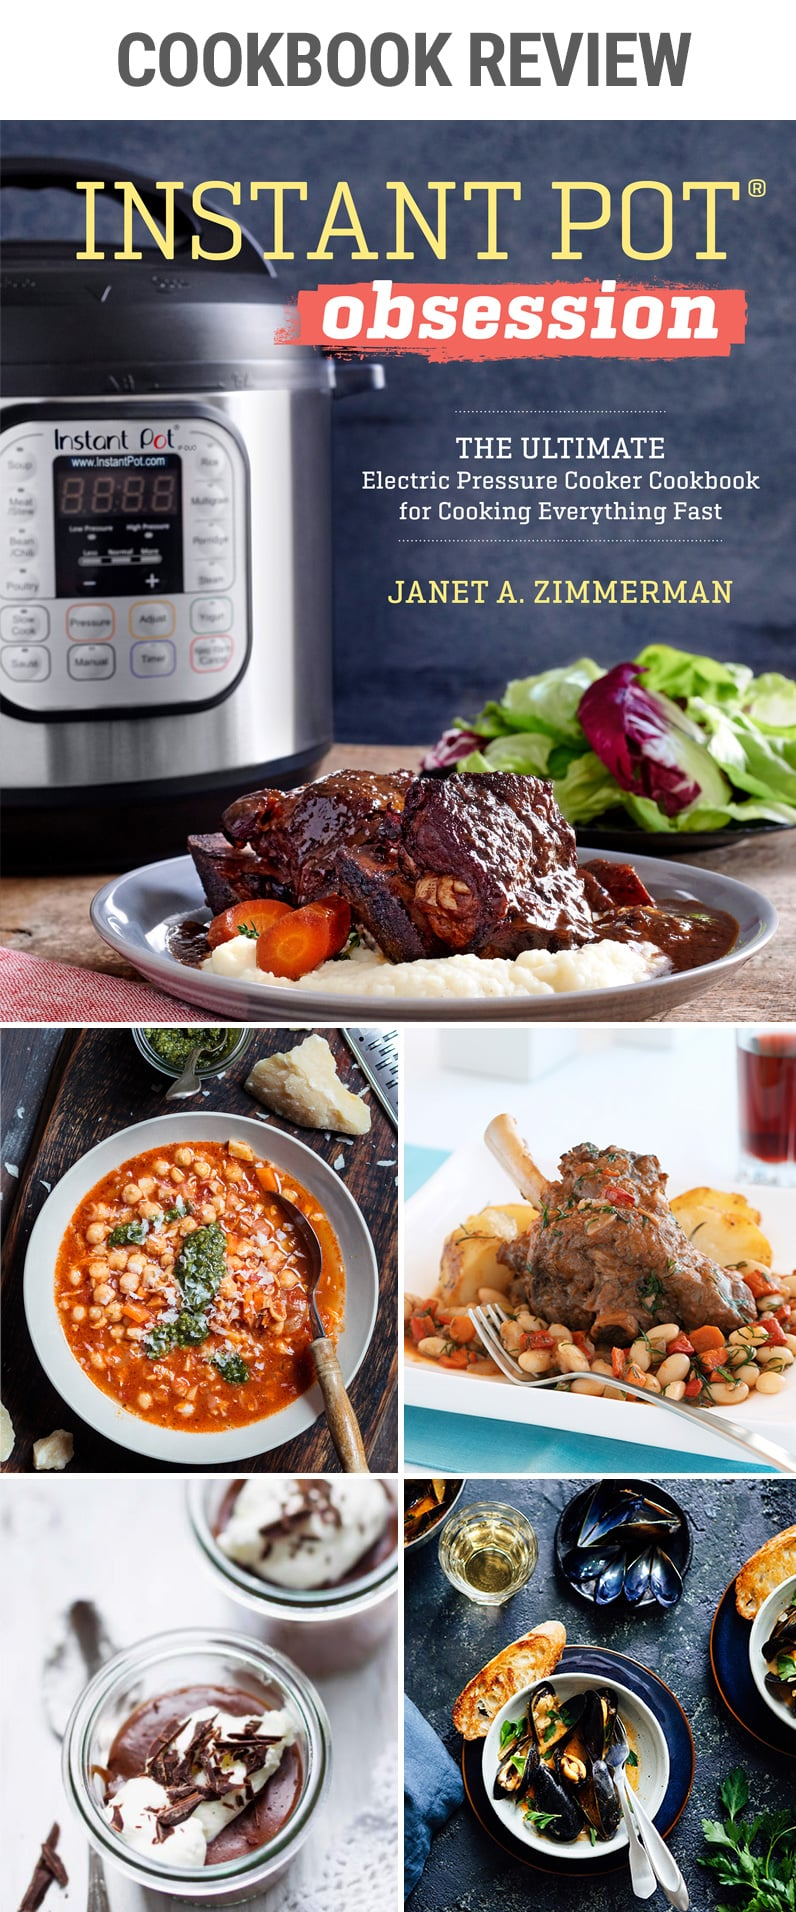 Instant Pot Obsession - Cookbook Review